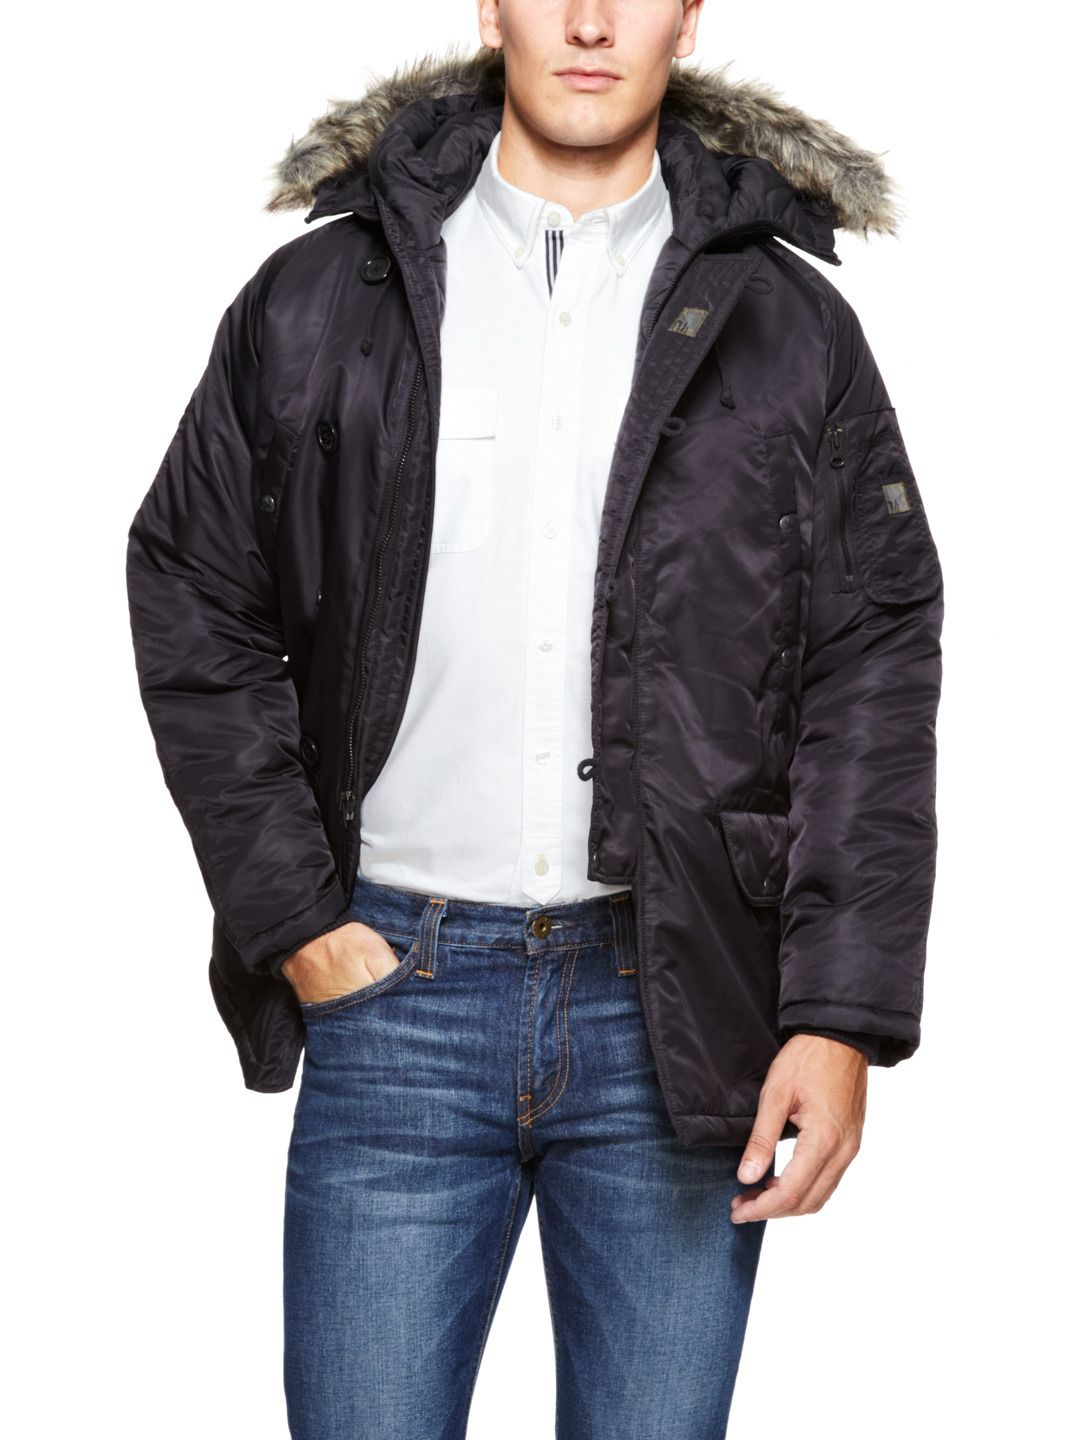 394e5e19505 N3B Snorkel Parka by Spiewak   Sons on Park   Bond